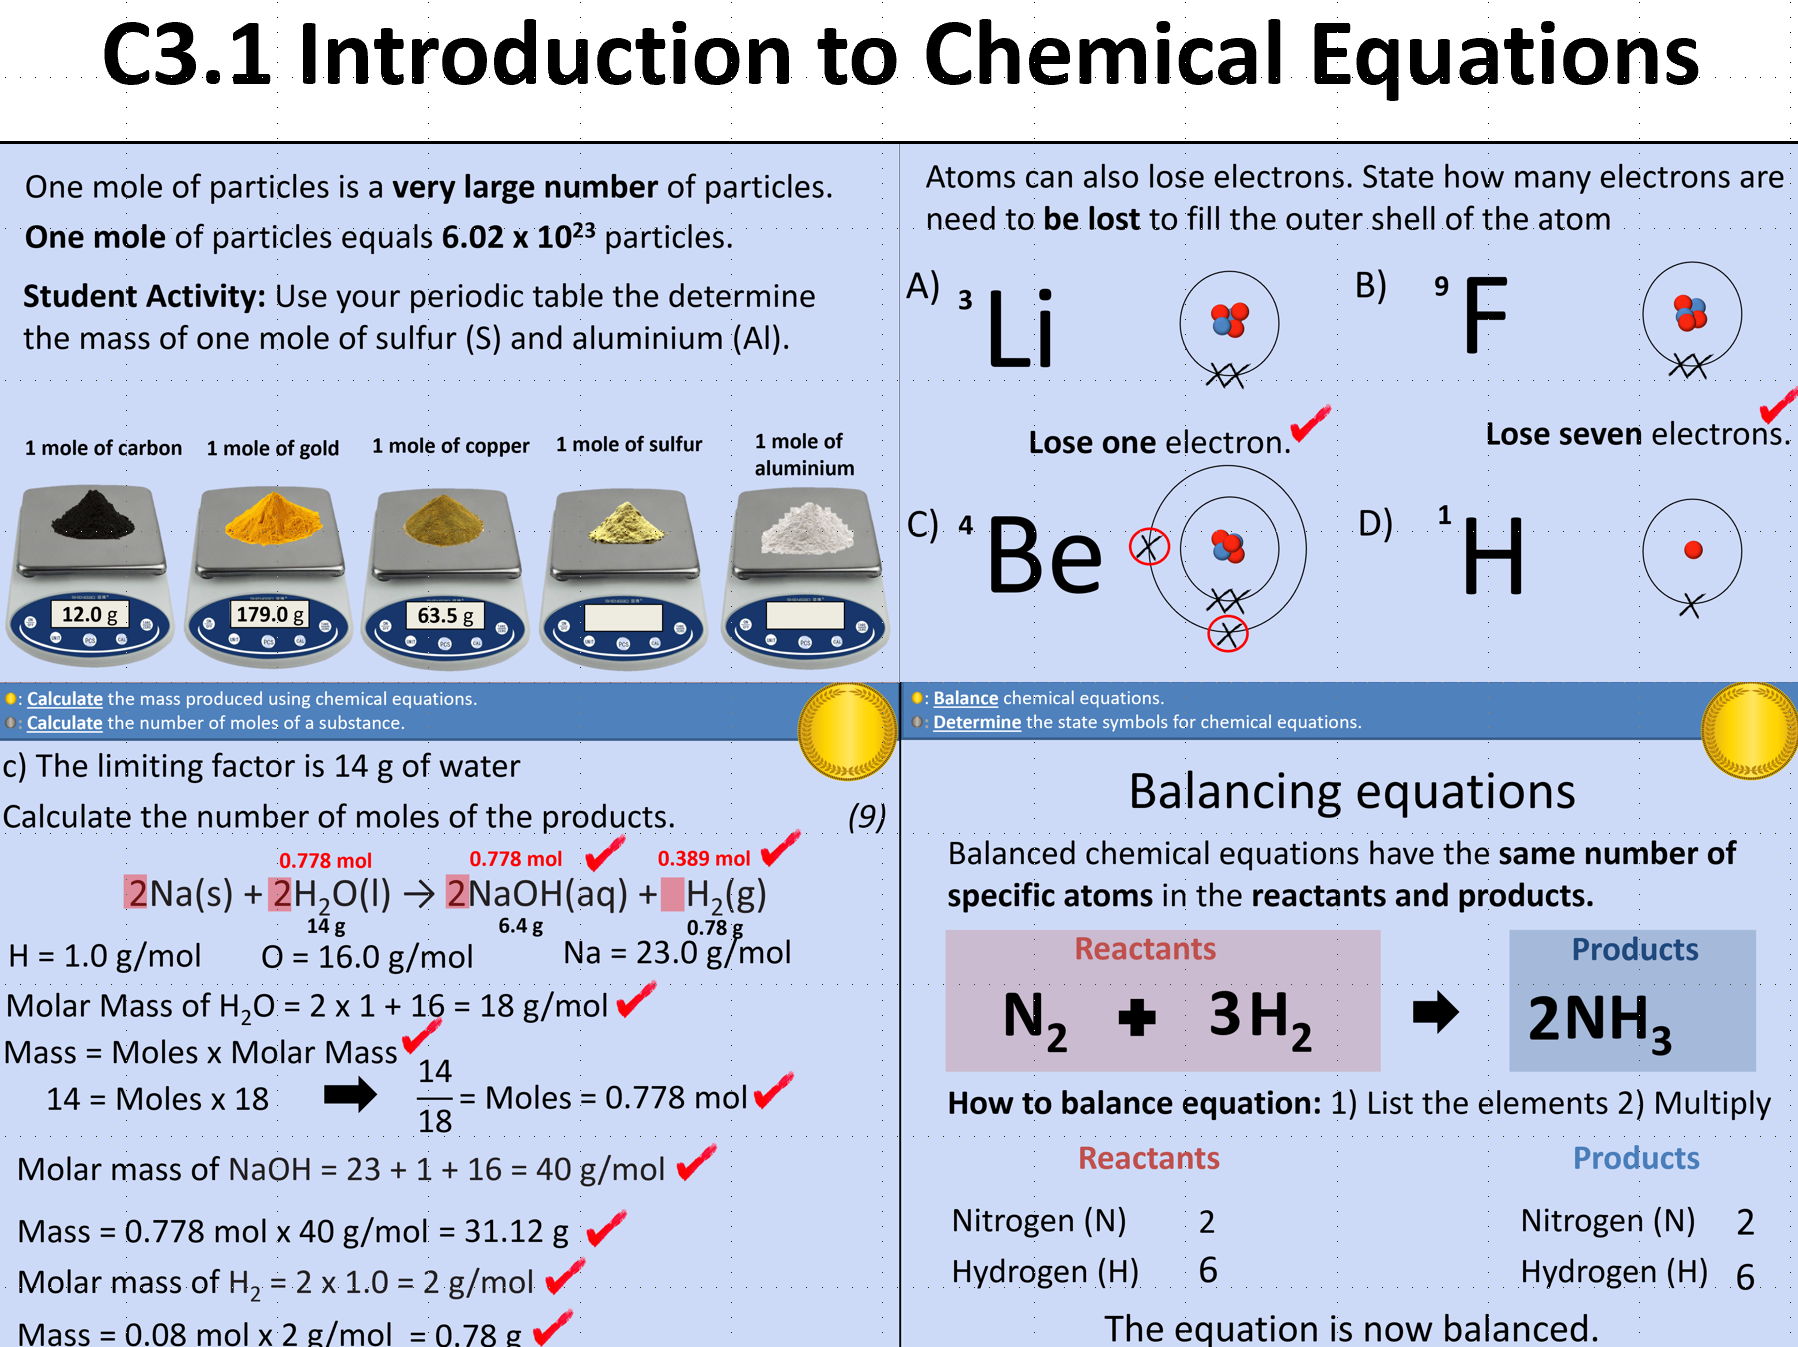 GCSE OCR Chemistry C3.1 Introducing Chemical Reactions